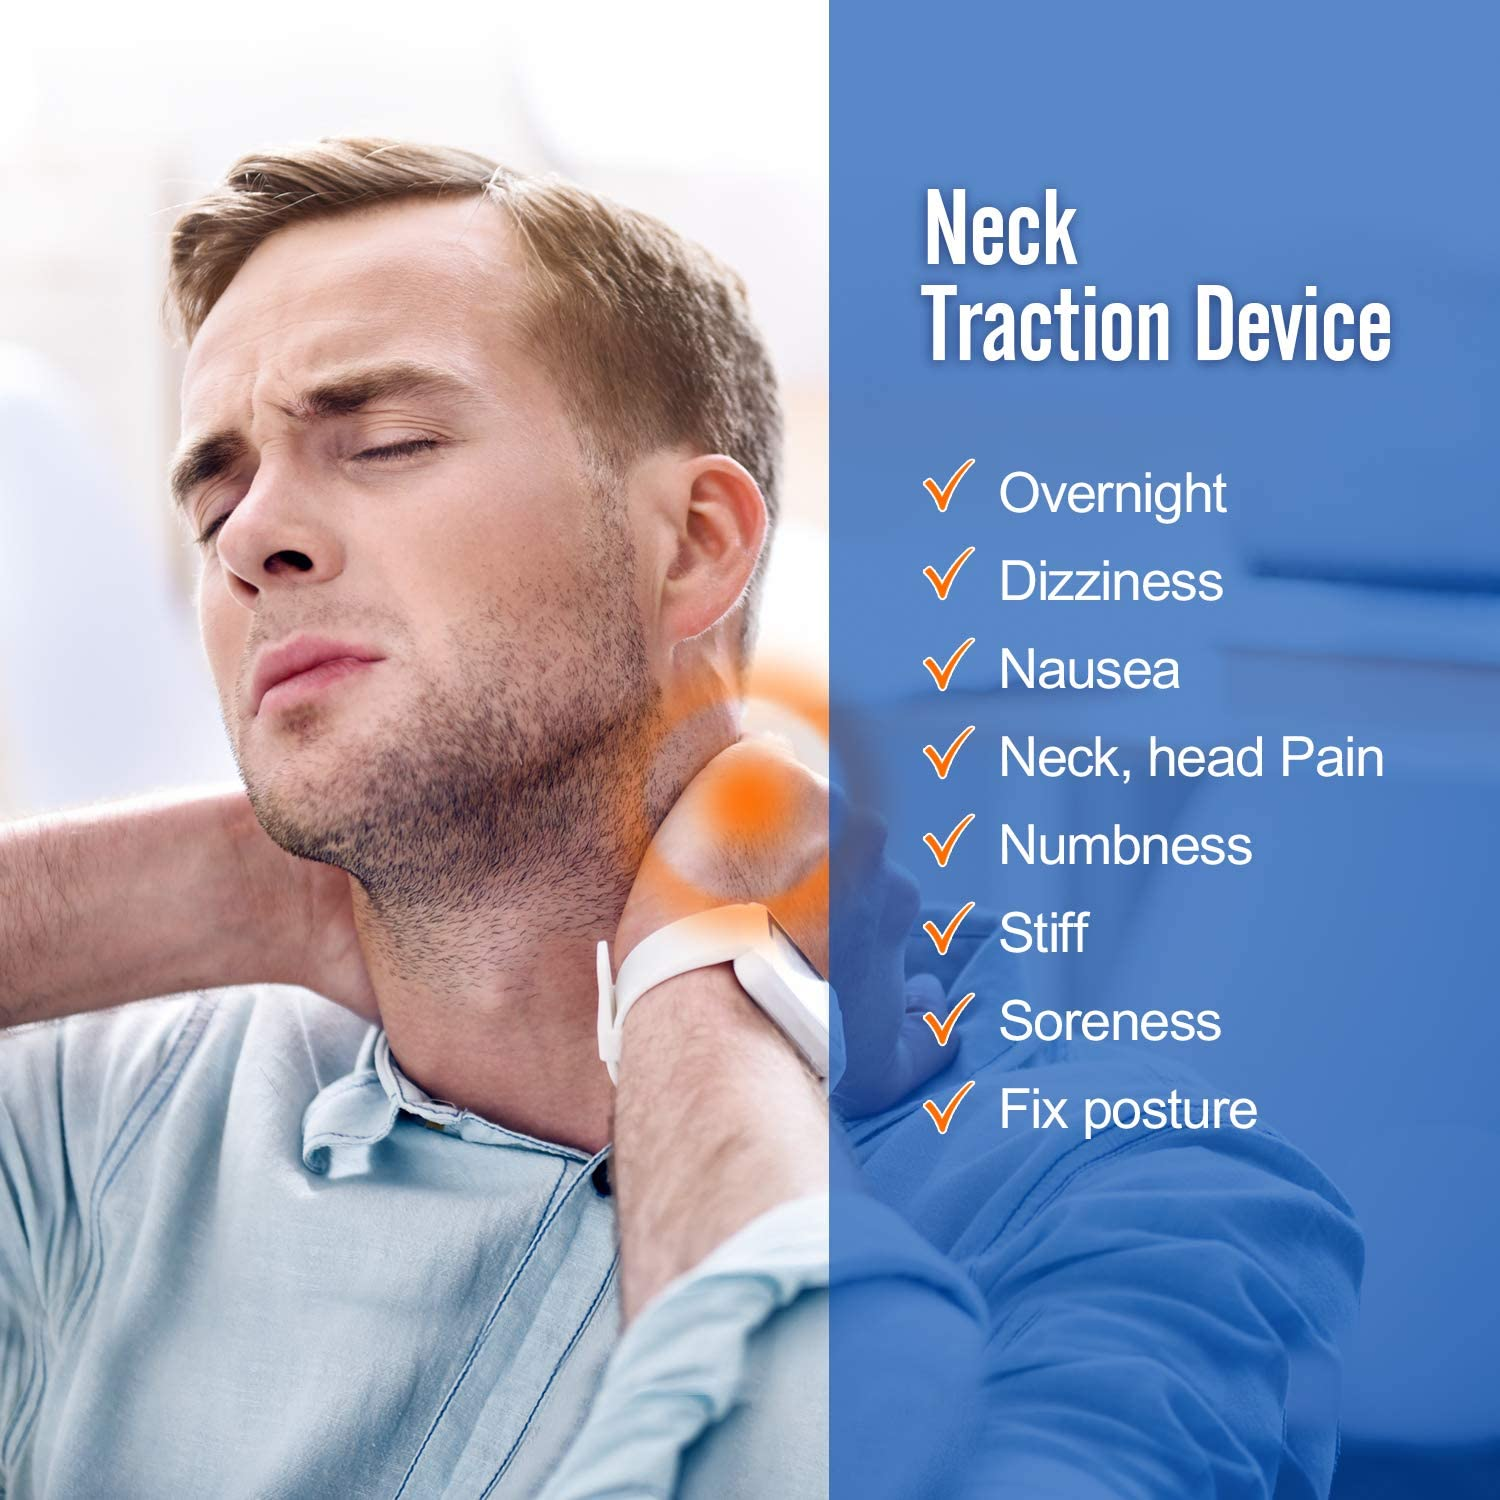 Neck Traction Ohuhu Neck Cervical Traction Collar Device for Neck and Back Pain Relief, Inflatable Spine Alignment Pillow, Grey Father's Day Gift: Health & Personal Care